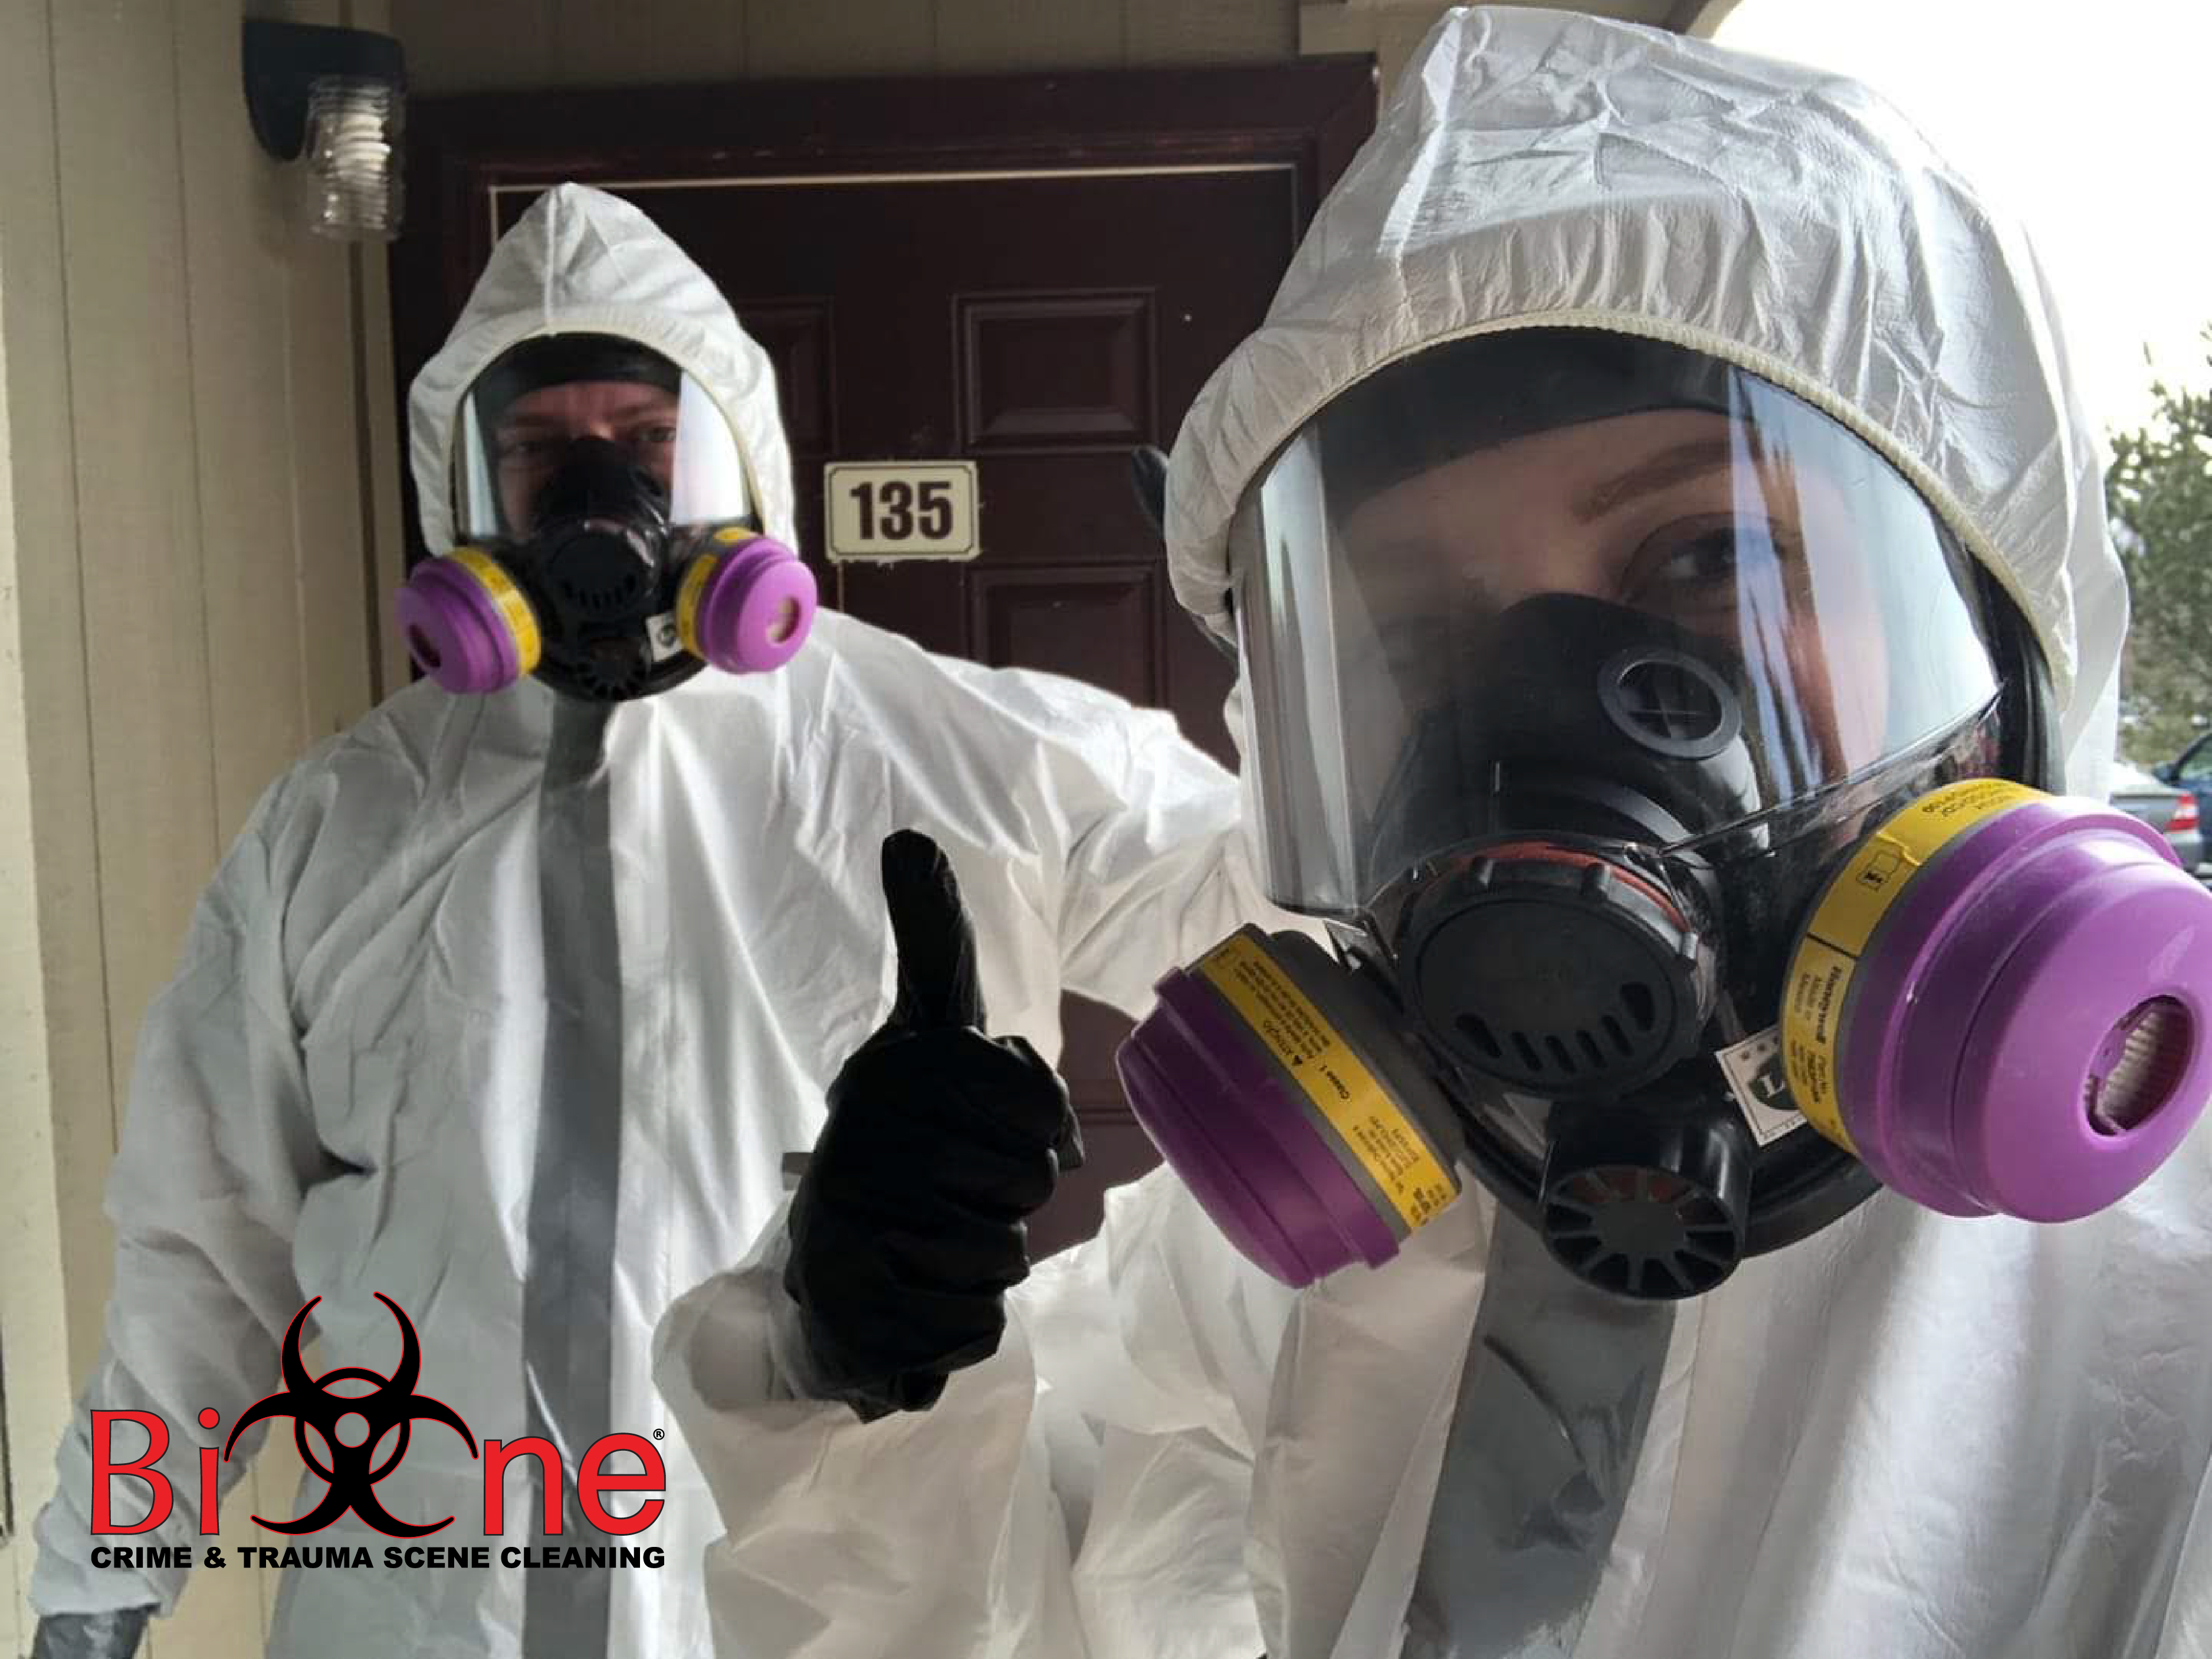 Biohazard Cleanup During The COVID-19 Pandemic